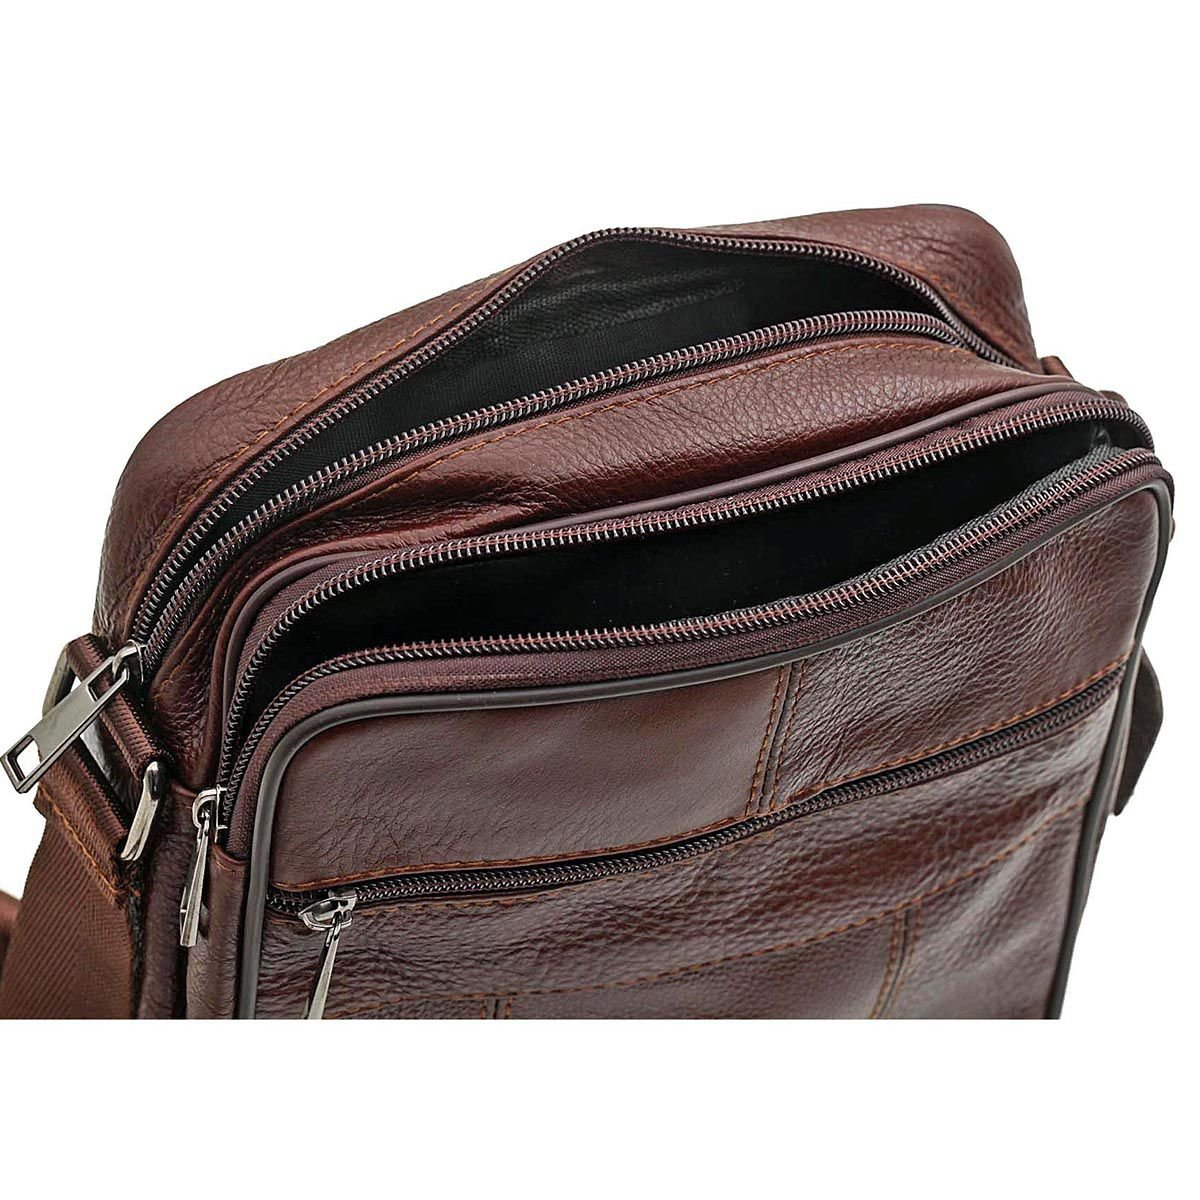 Small Genuine Leather Cross Body Messenger Bags Satchel Shoulder Bag for Men Brown